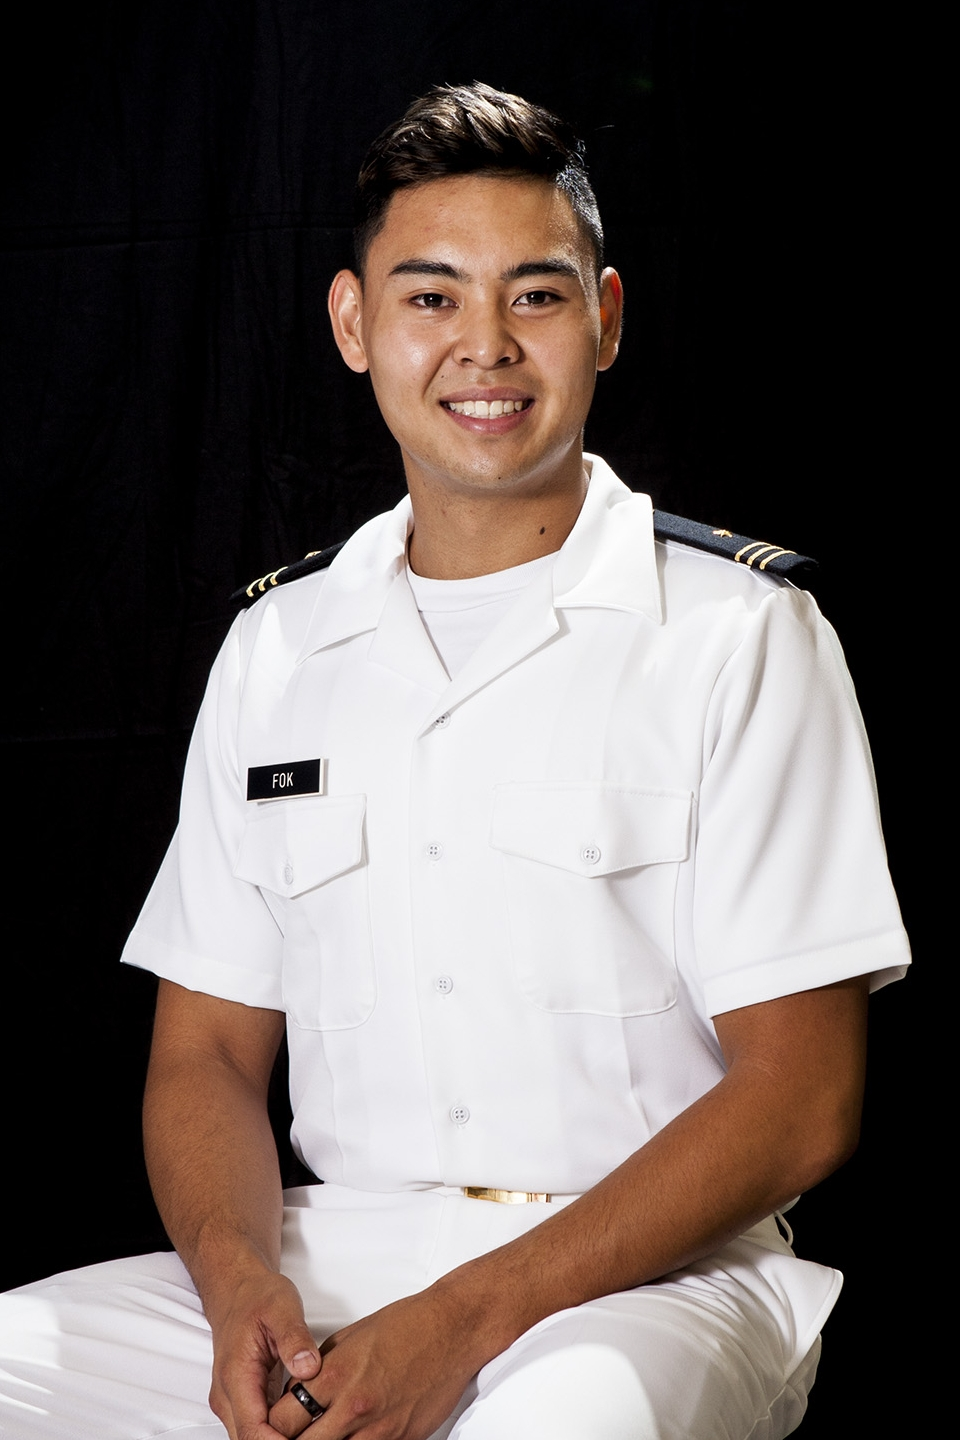 Jordan Fok - InstructorBachelor of Science